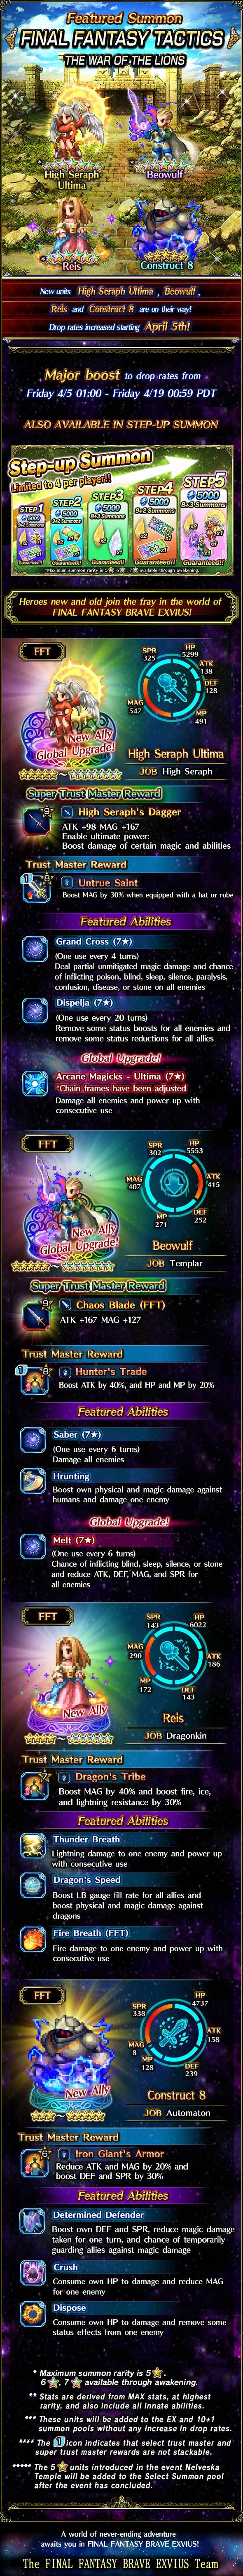 Invocations du moment - FFT (Ultima/Beowulf) - du 05/04 au 19/04/19 FF3TWOTLUltimaGacha